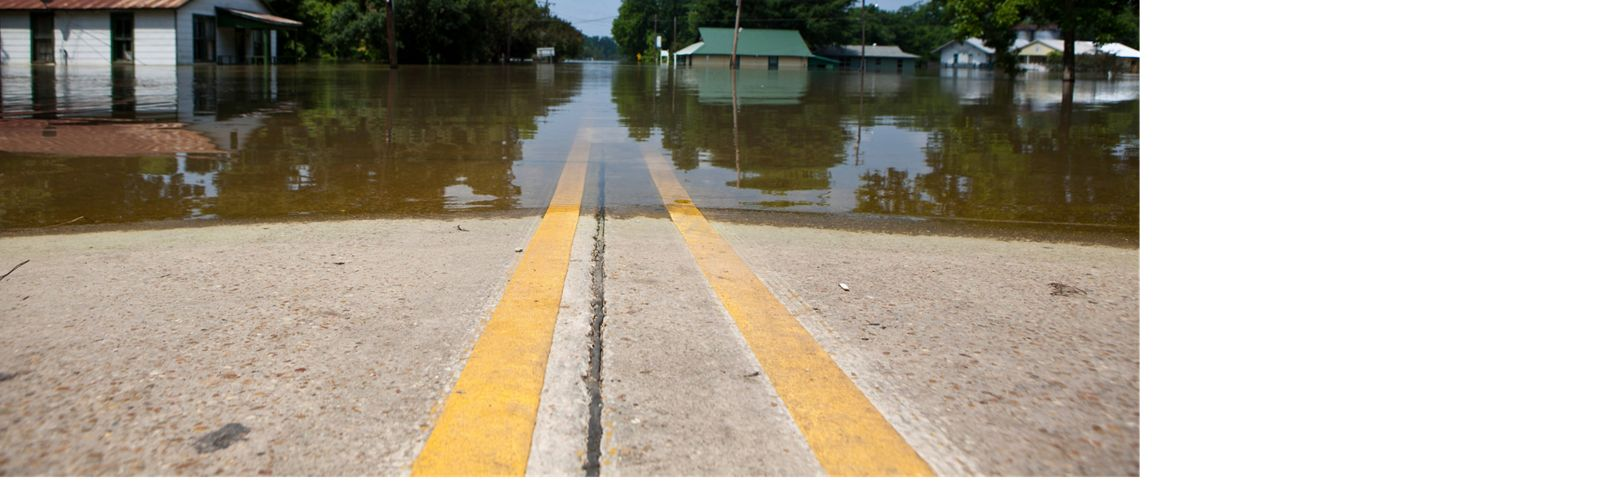 High water from mississippi river flooding a road with double yellow line in louisiana